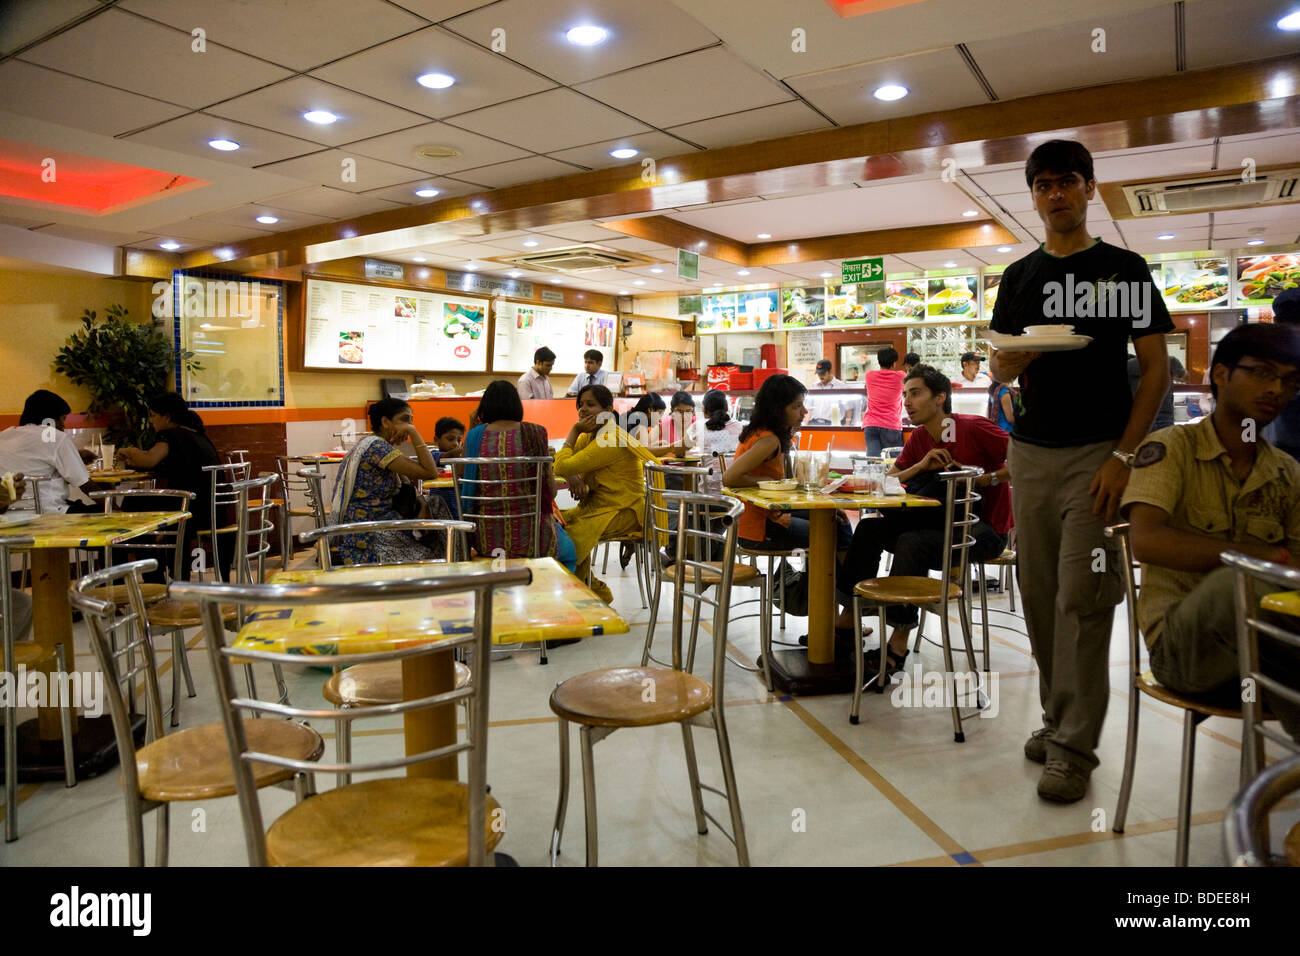 Fast Food Restaurant Tables Stock Photos & Fast Food Restaurant